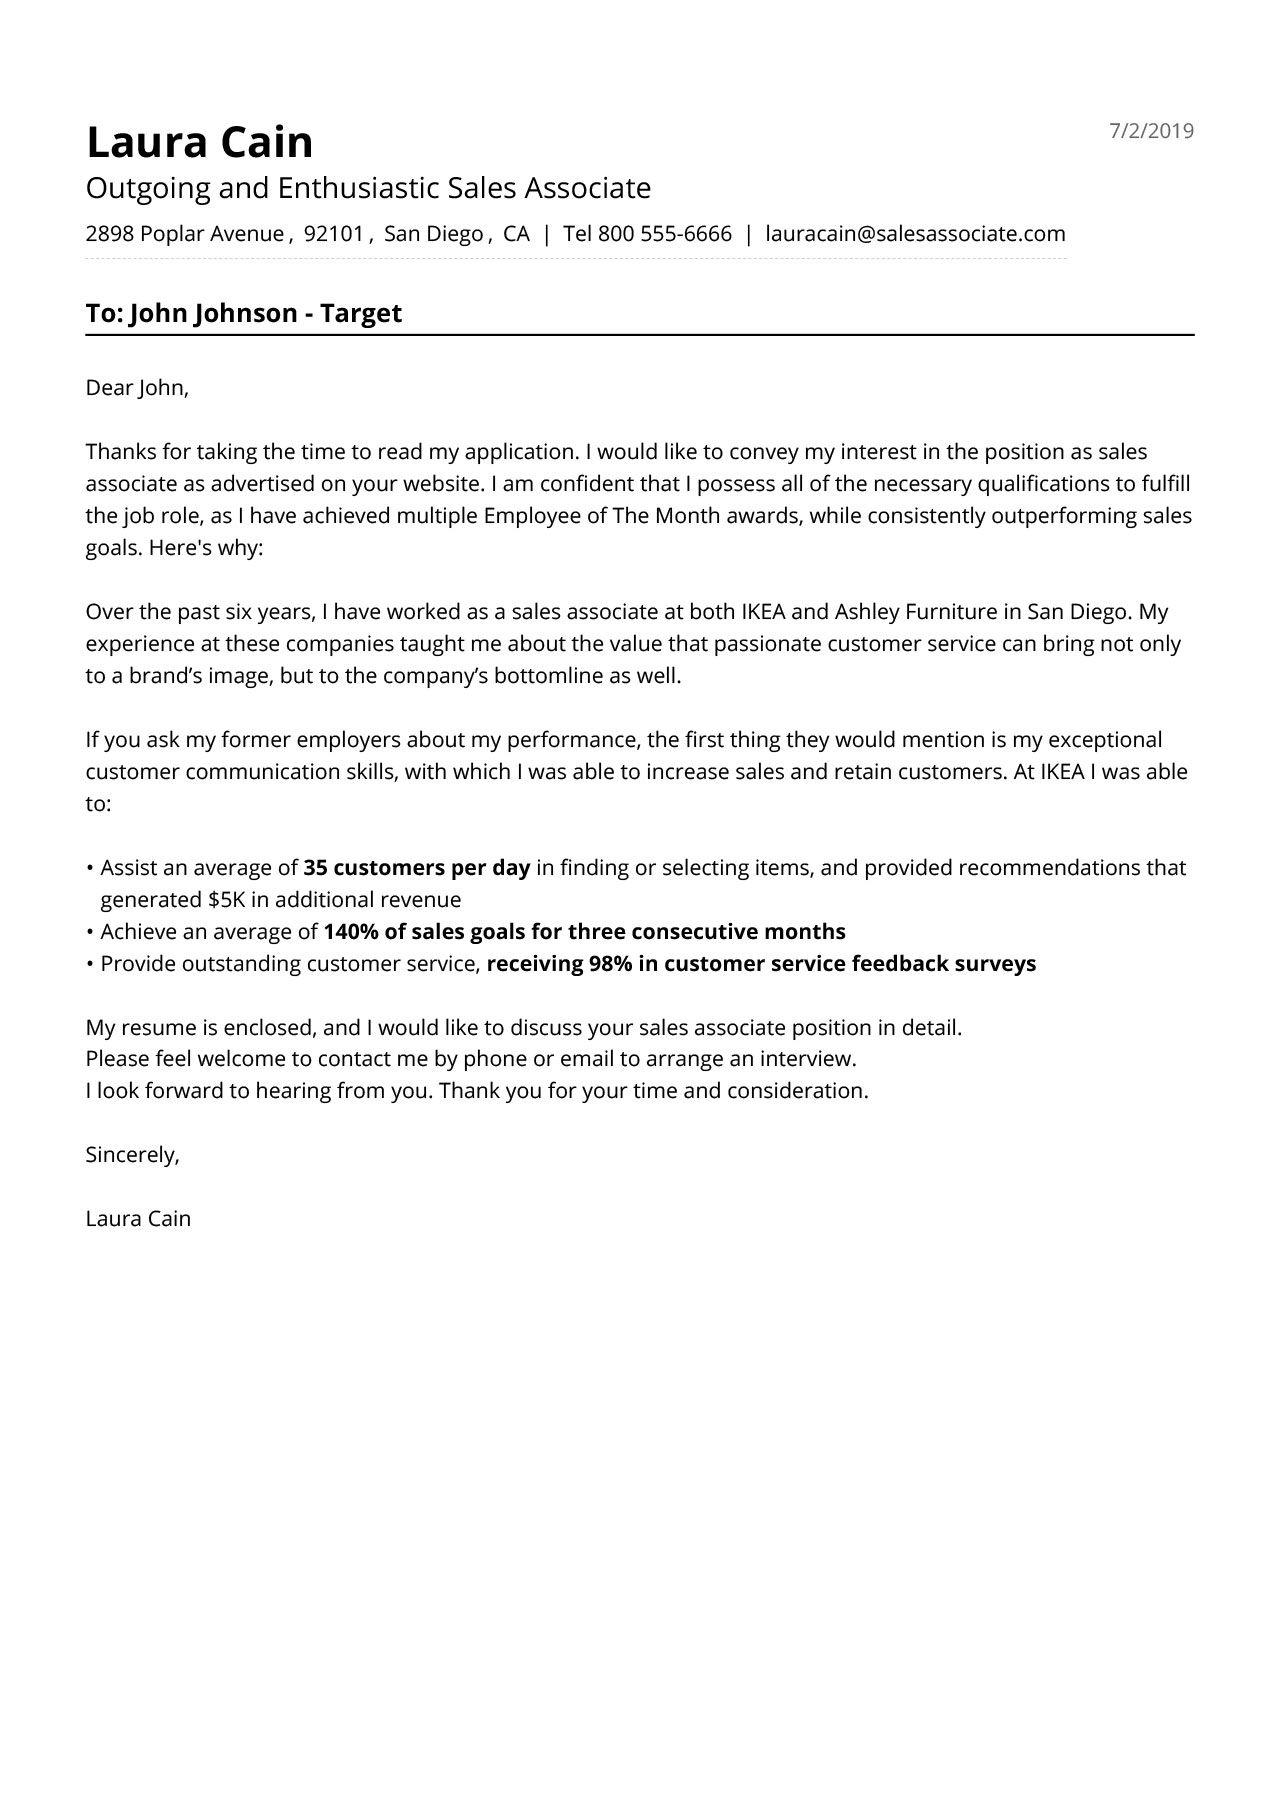 Sales associate cover letter example cover letter